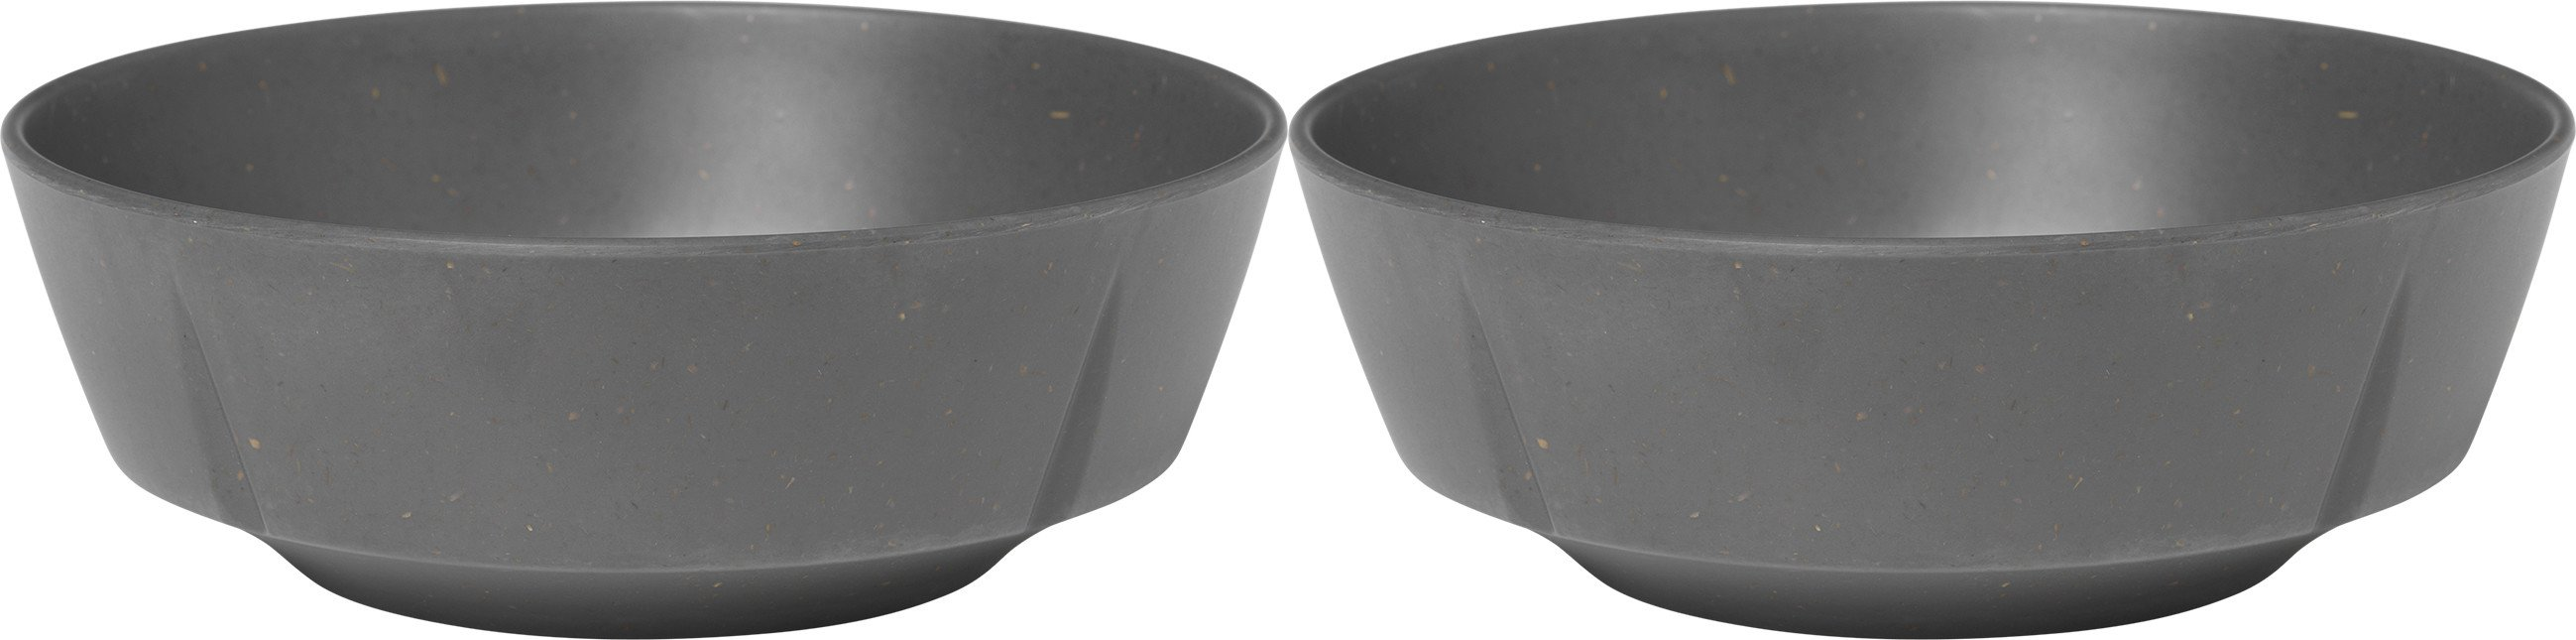 Grand Cru Take Bowl 2 pcs. Dark Grey, Rosendahl